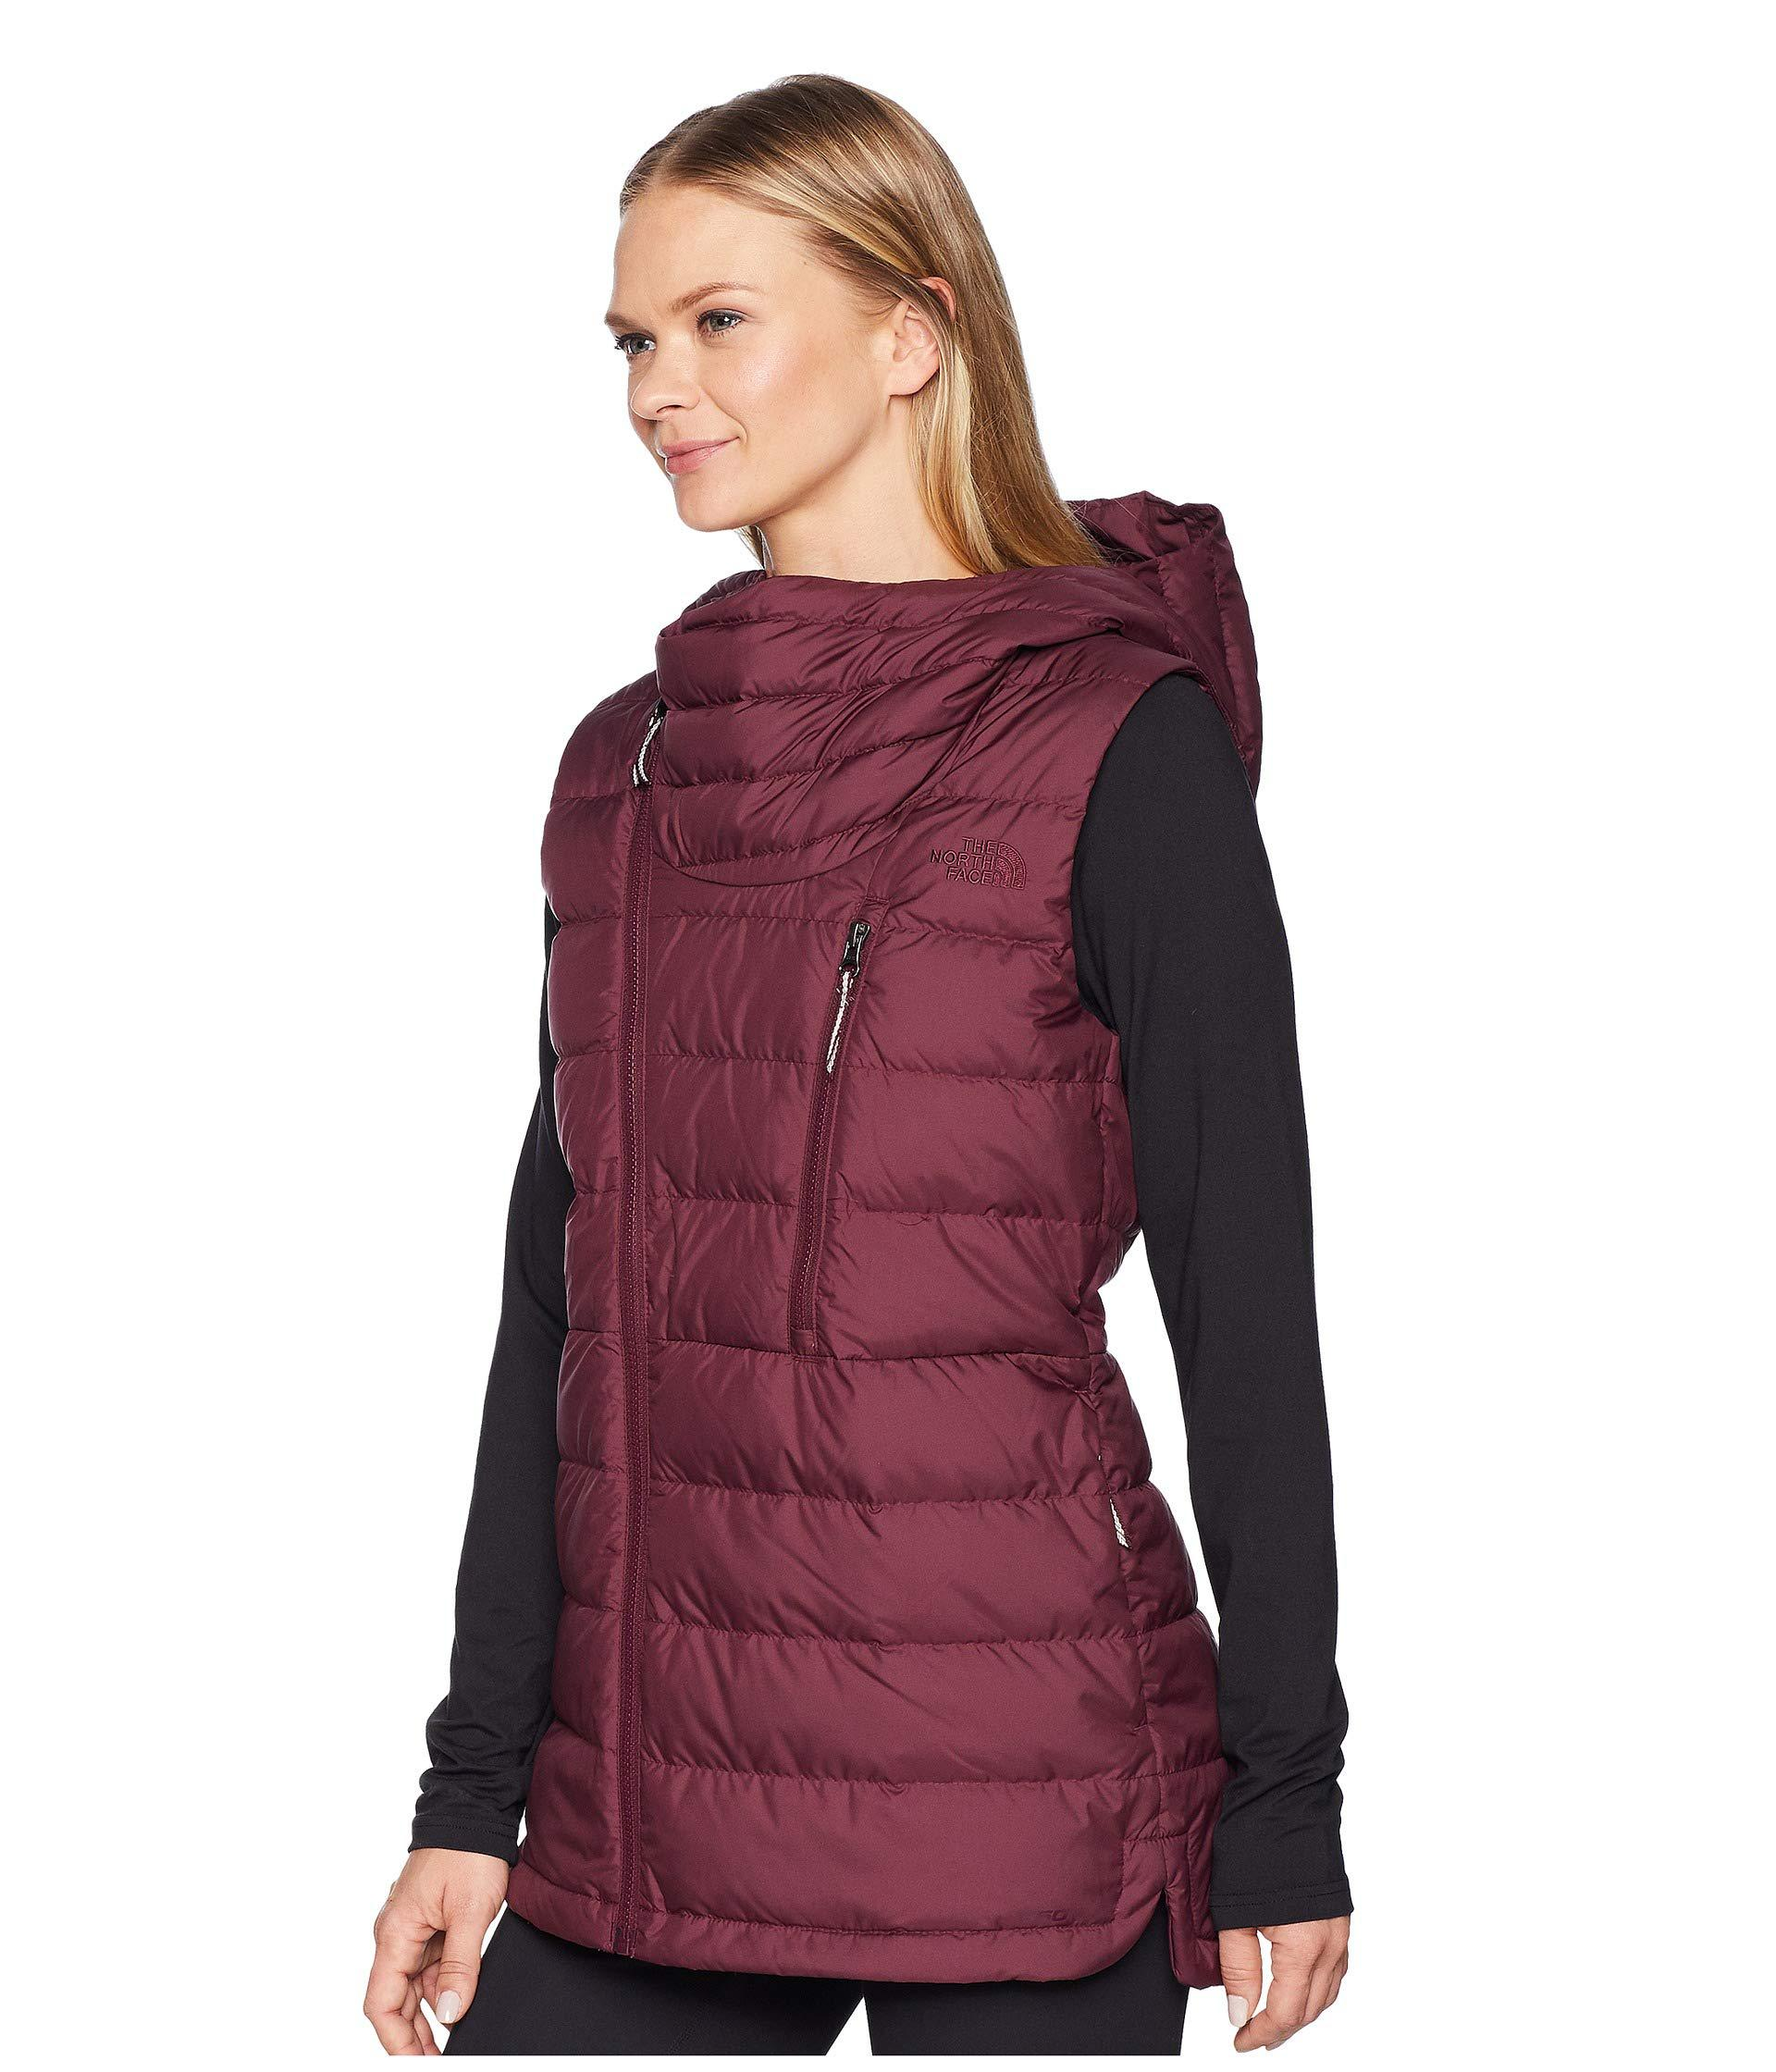 000ea95751b0 Lyst - The North Face Niche Vest (fig) Women s Vest